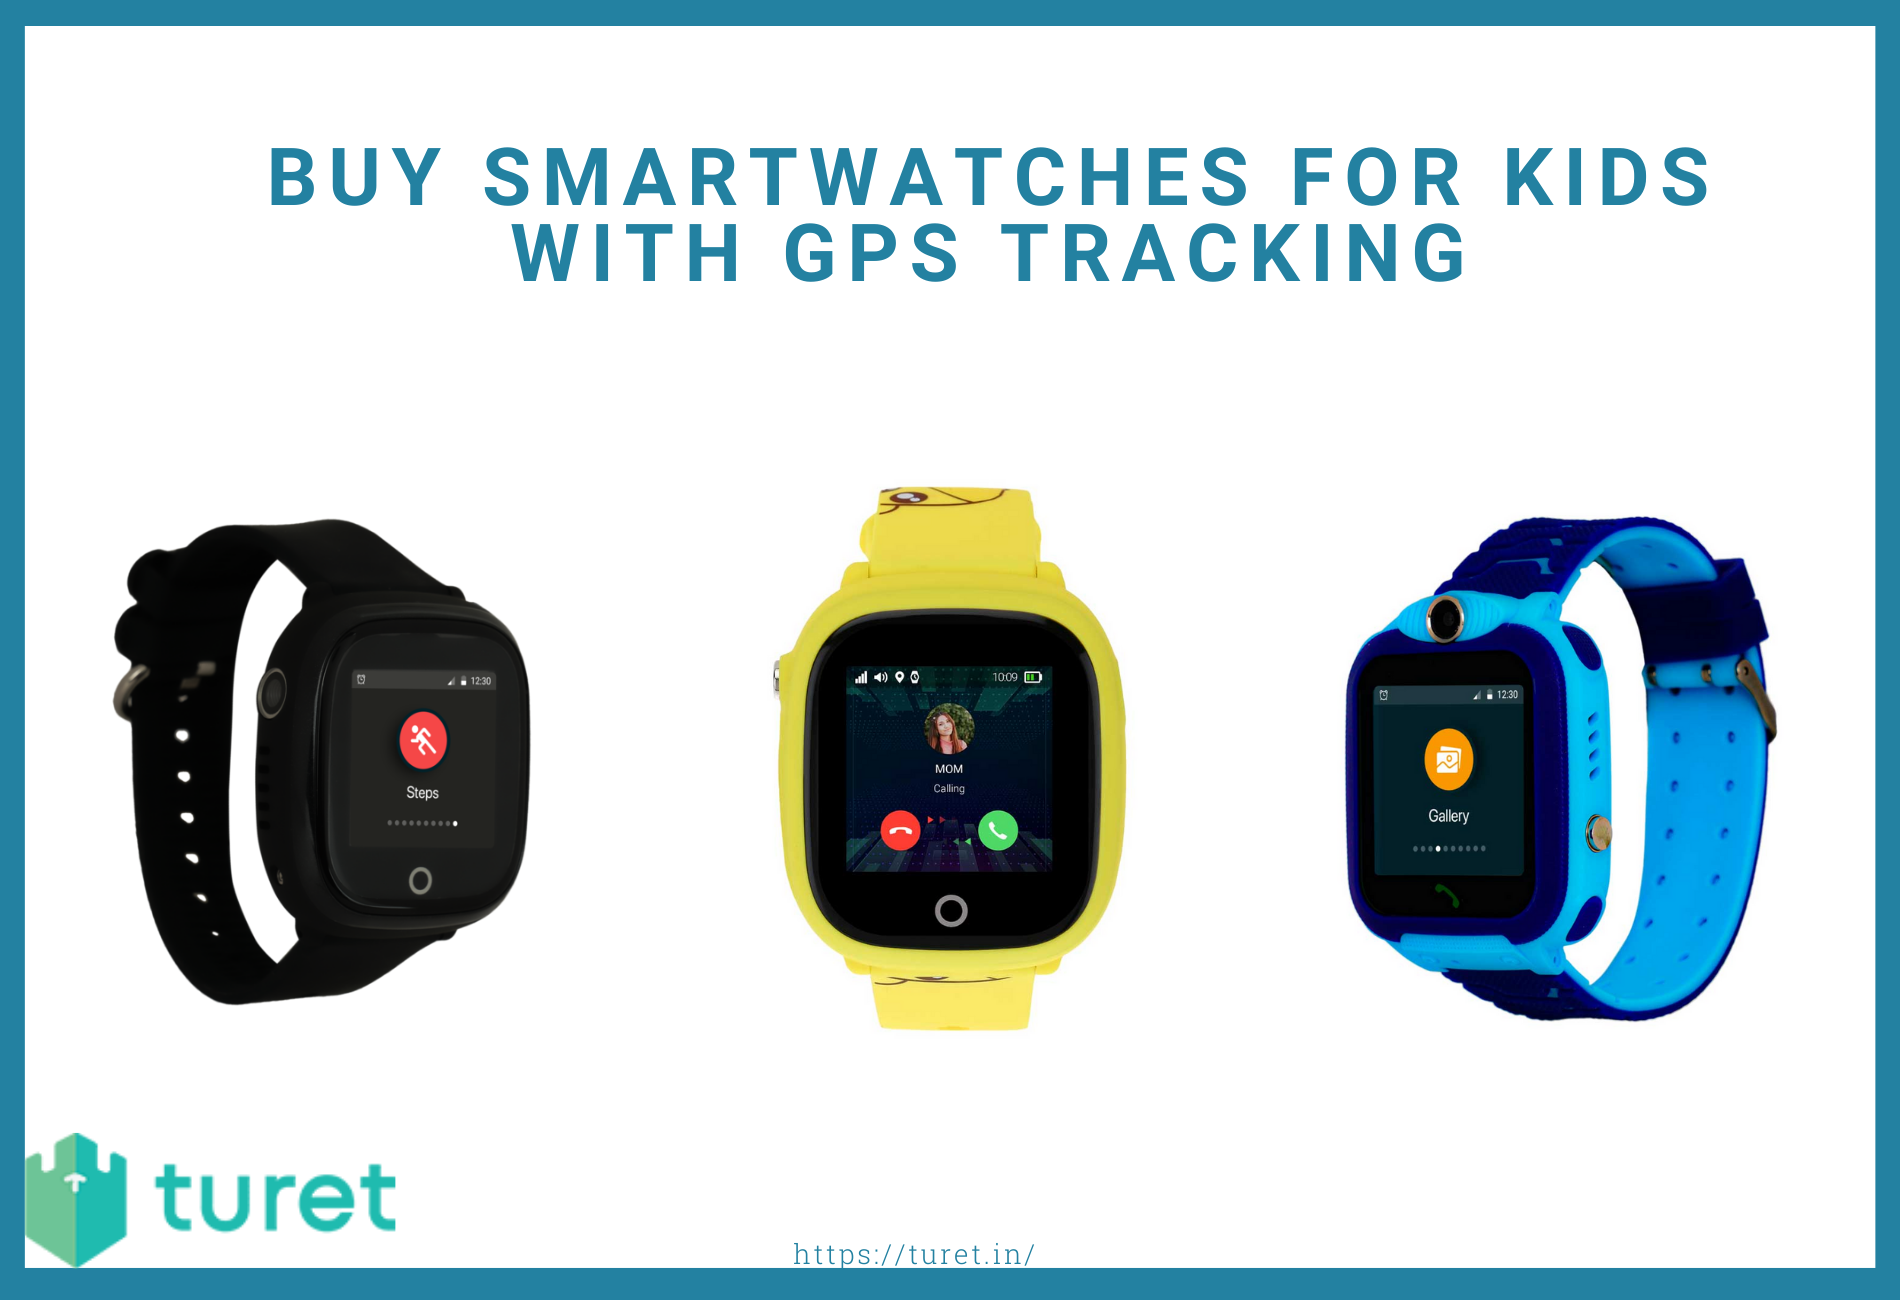 Smartwatches for kids with GPS tracking